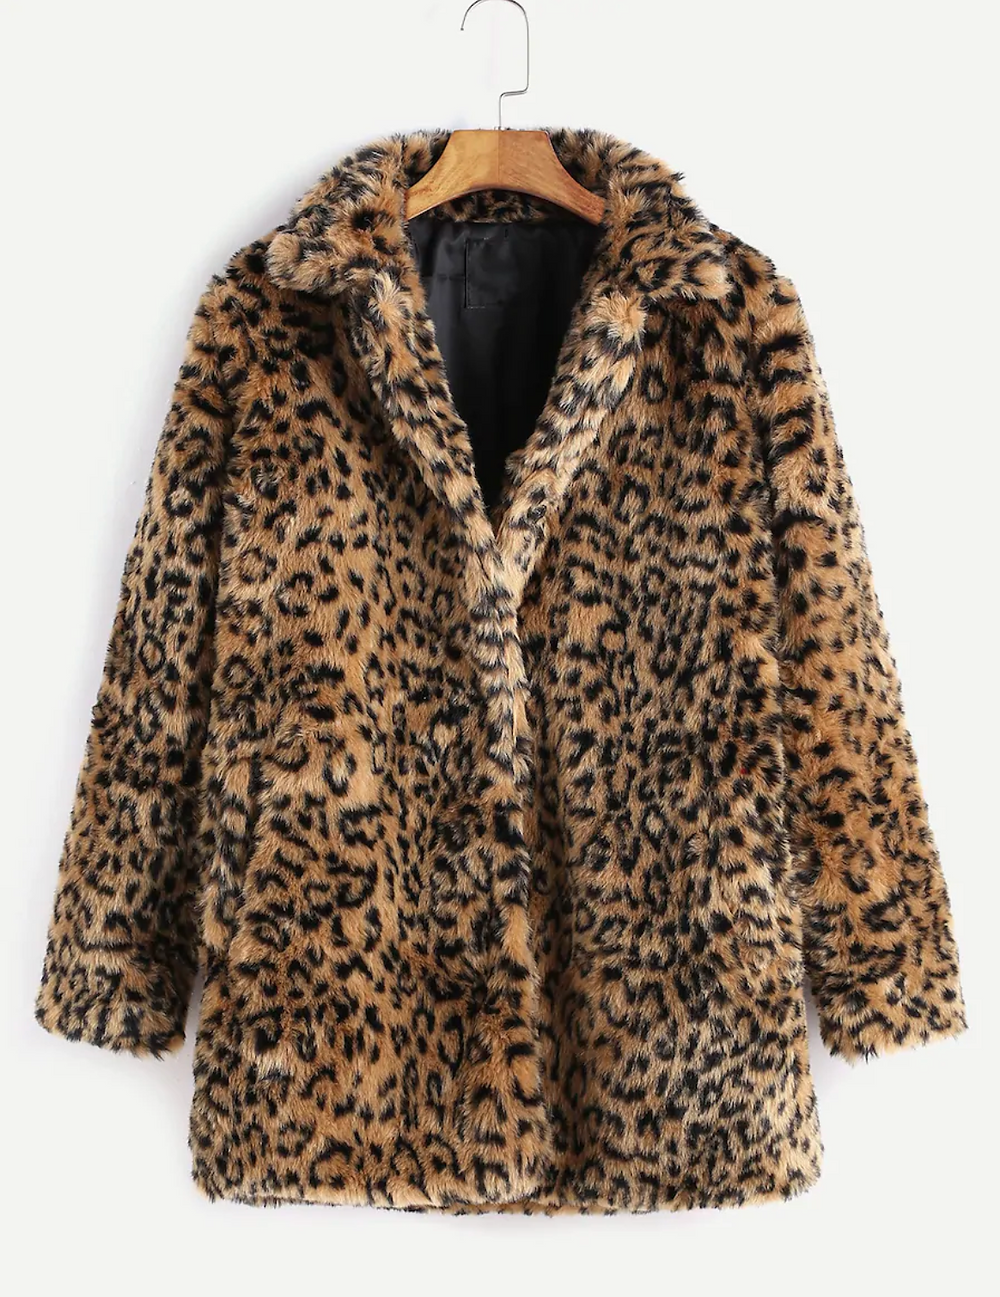 Shein animal print leopardo